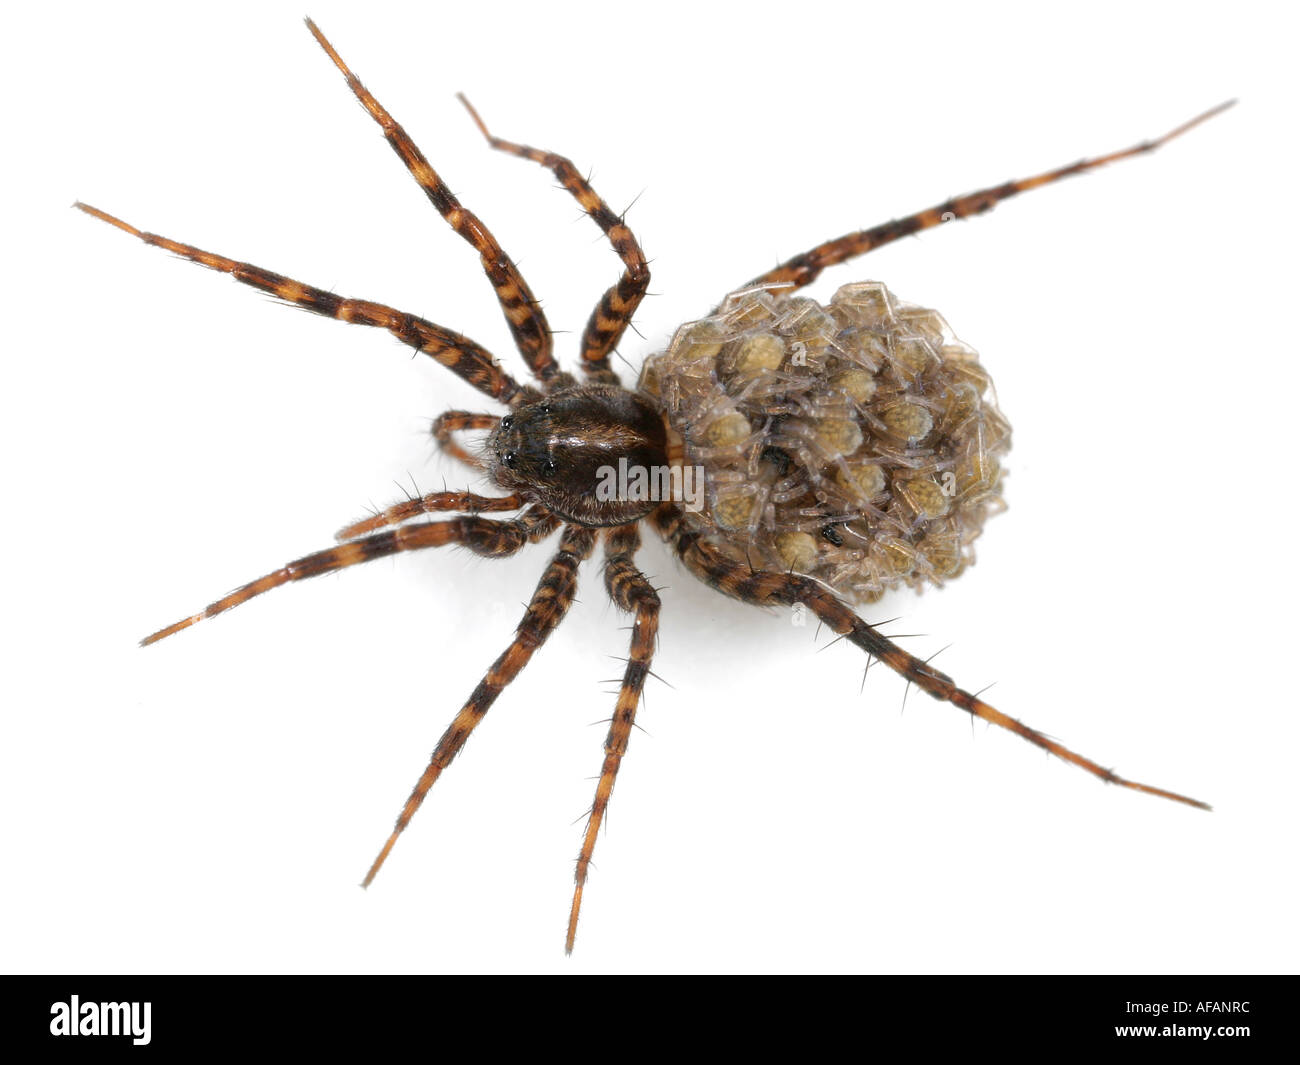 Close up of a female Wolf Spider, Pardosa, with spiderlings on her back, on white background - Stock Image